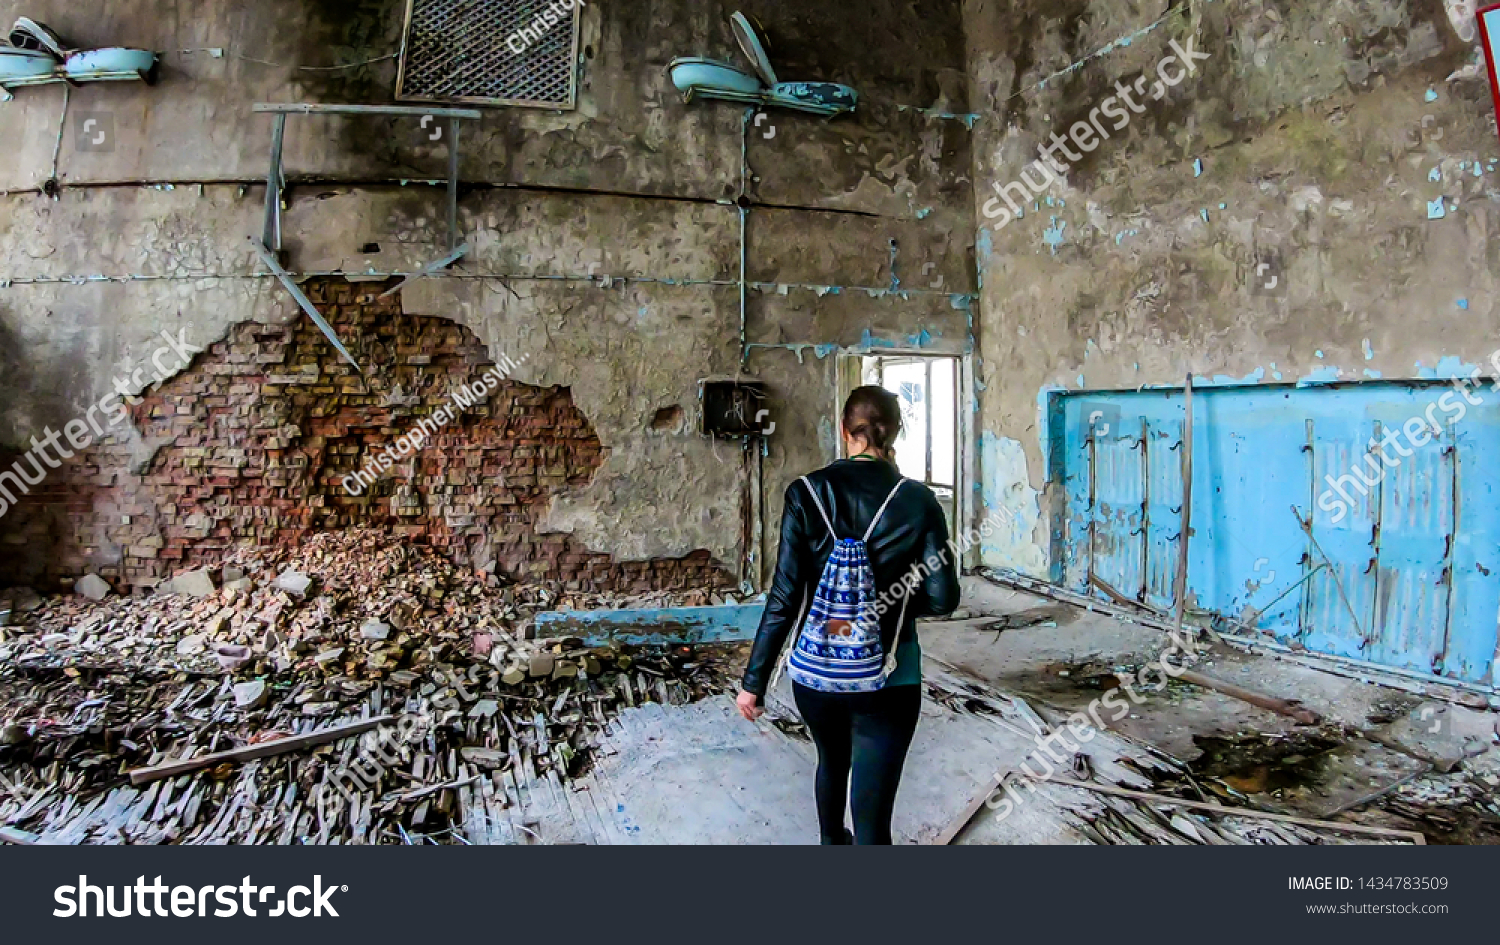 Girl in black outfit walks around the rotten floor in an abandoned sports hall in Pripyat, Ukraine, after the Chernobyl explosion. The floor is completely rotten. Lots of decaying object on the floor #1434783509